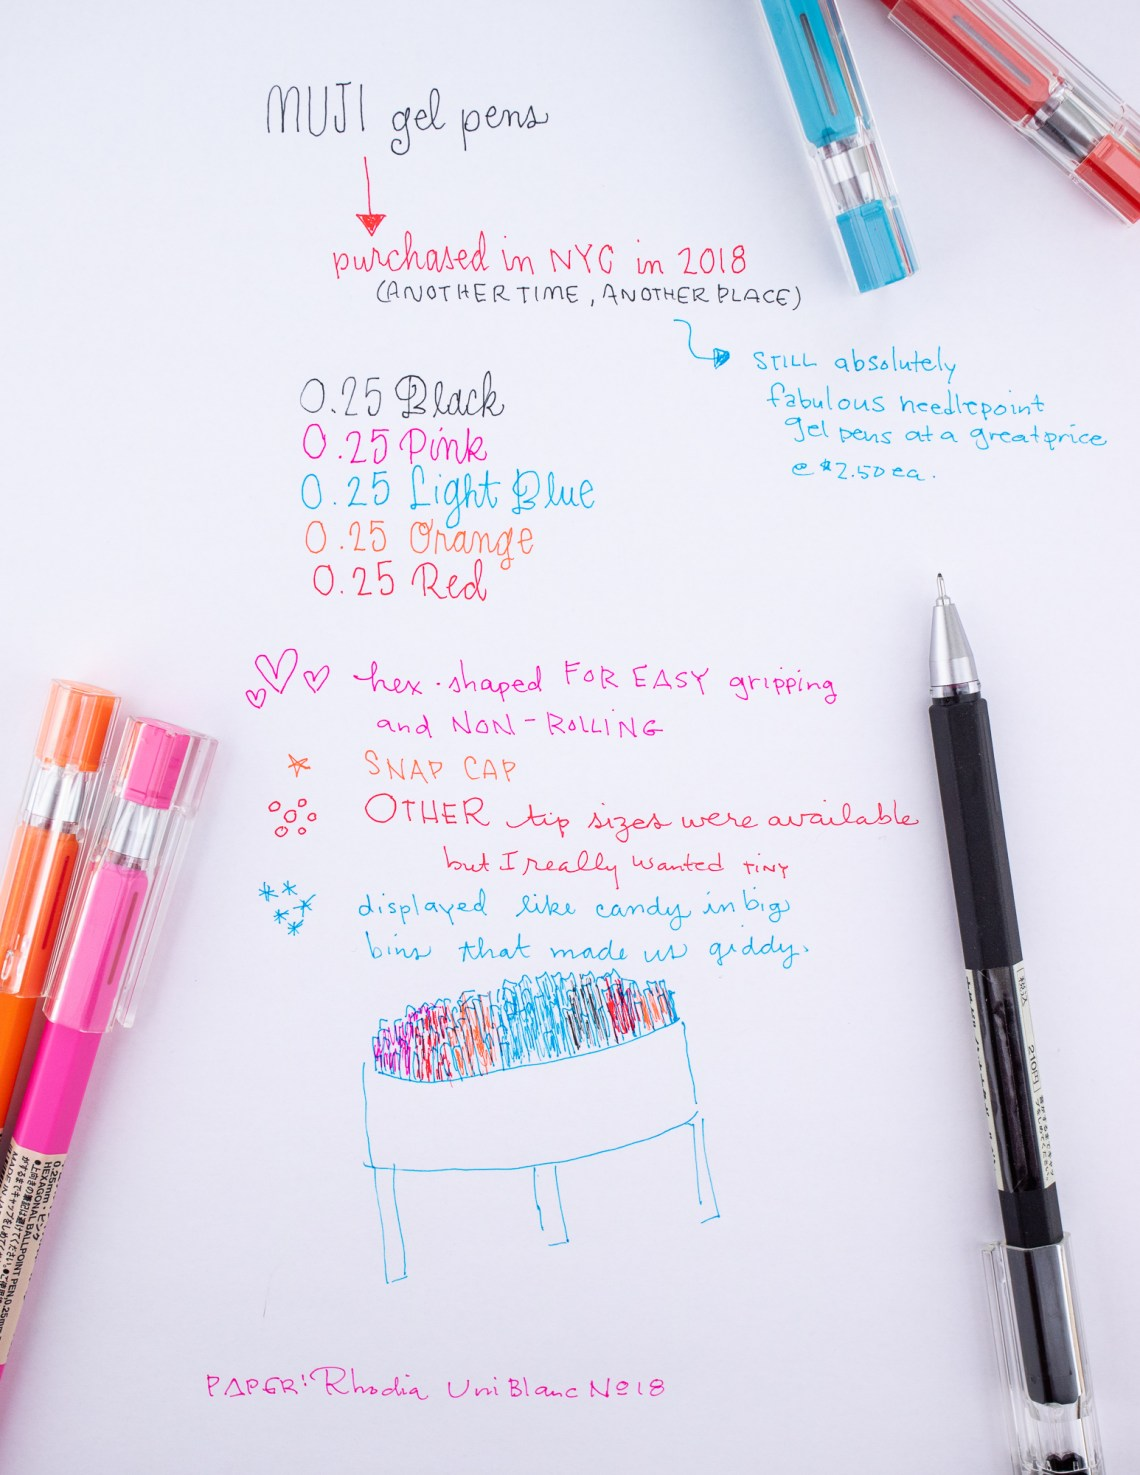 Muji Gel Pens 0.25mm writing sample